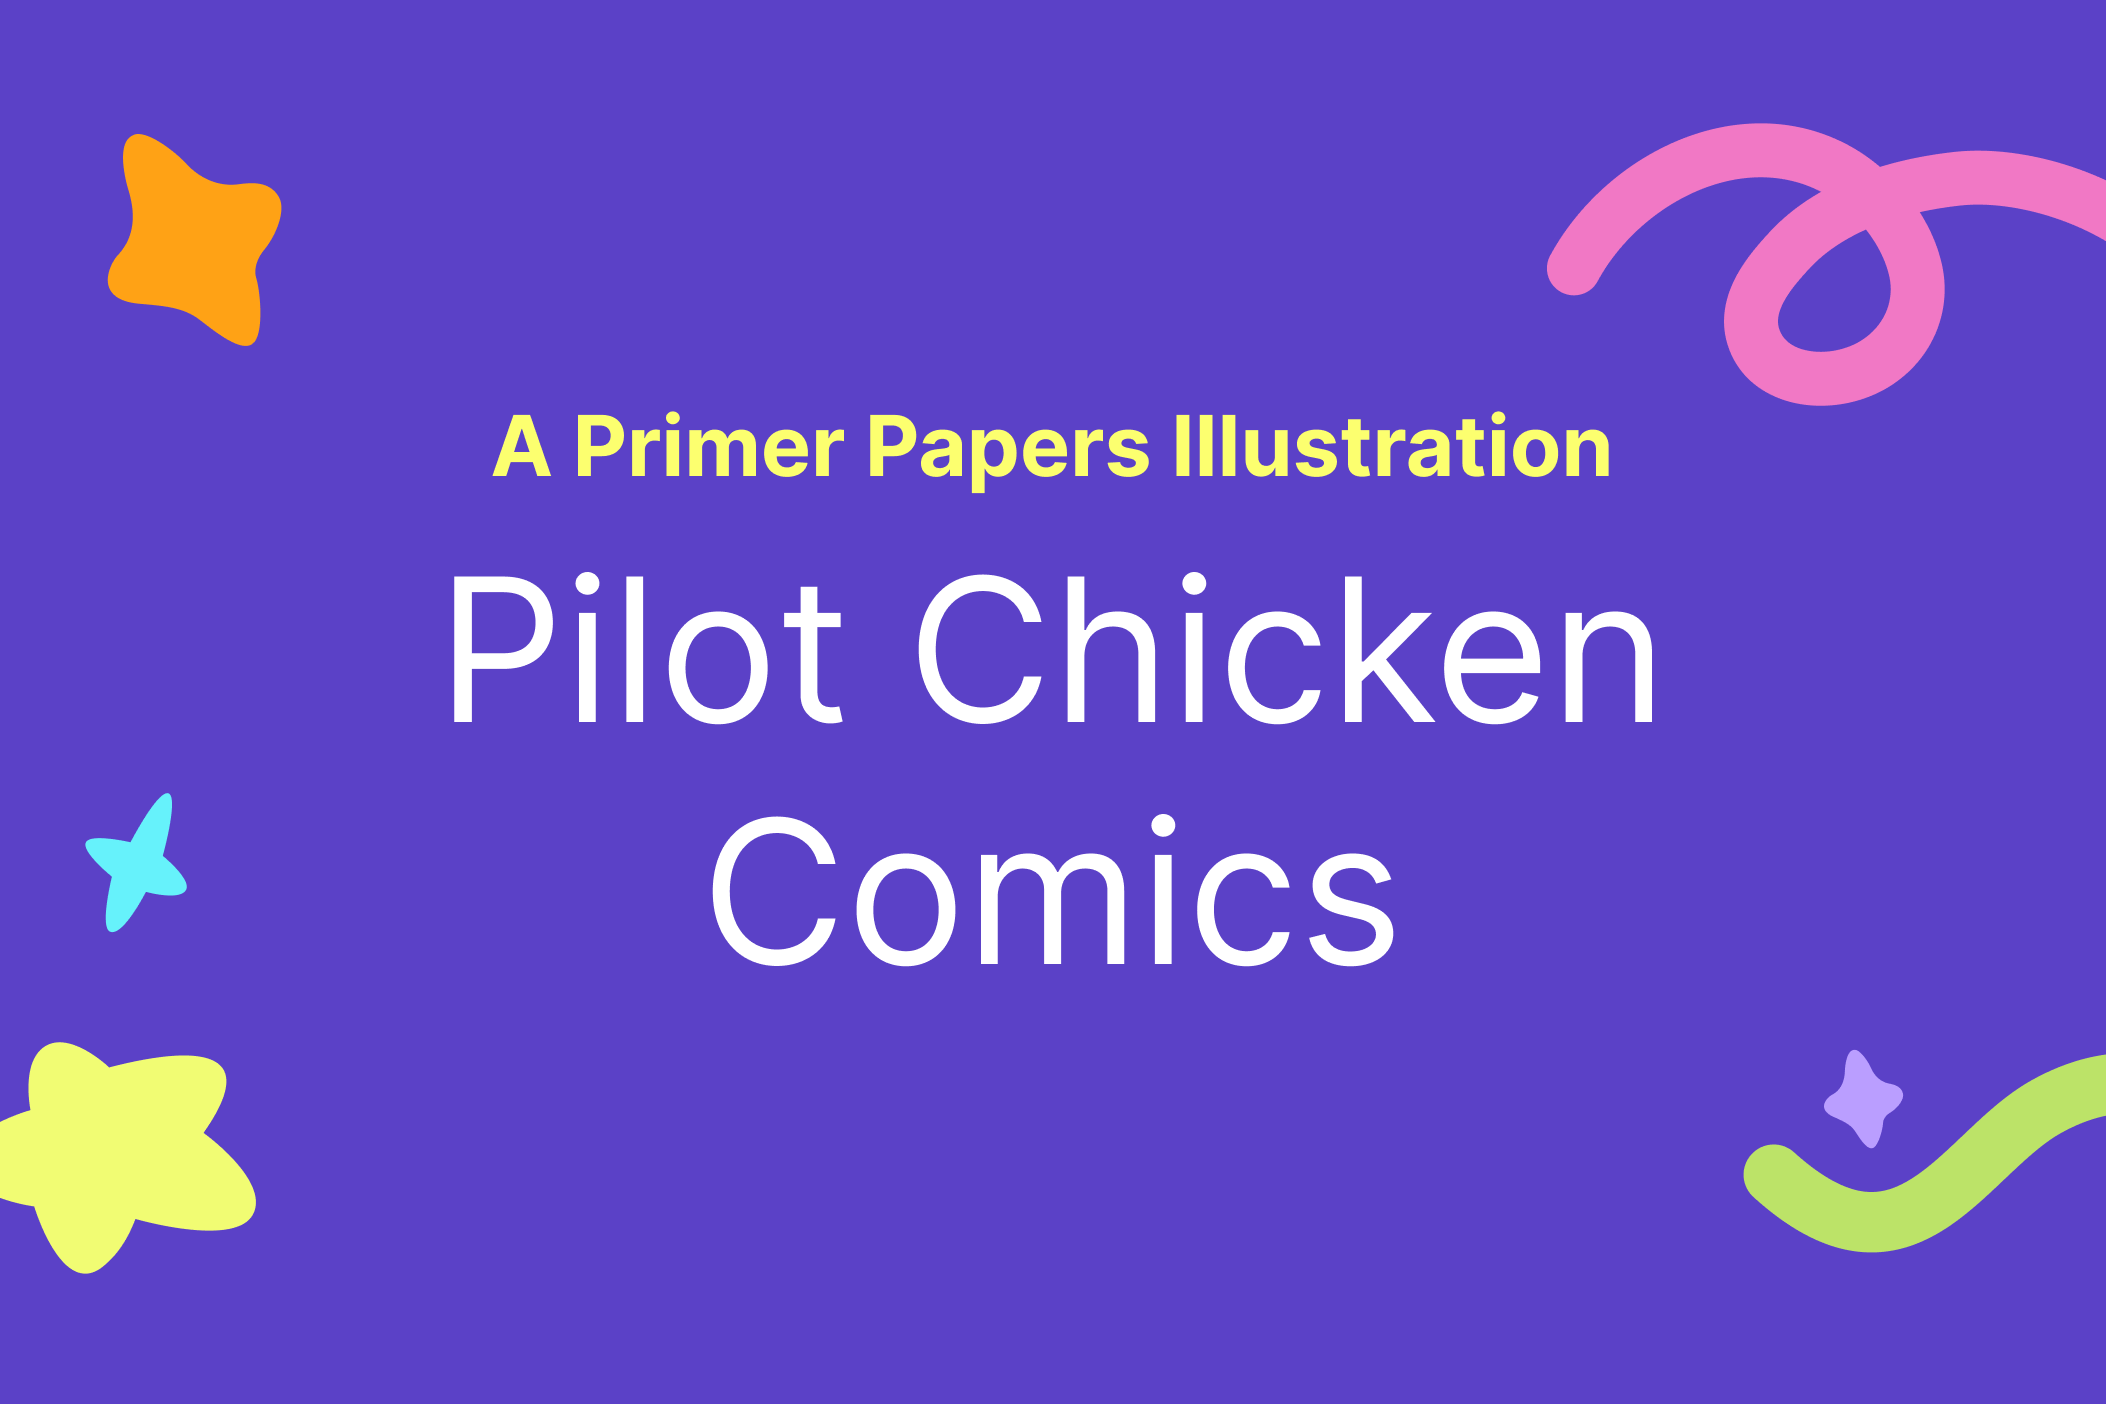 Pilot Chicken Comics by Victory